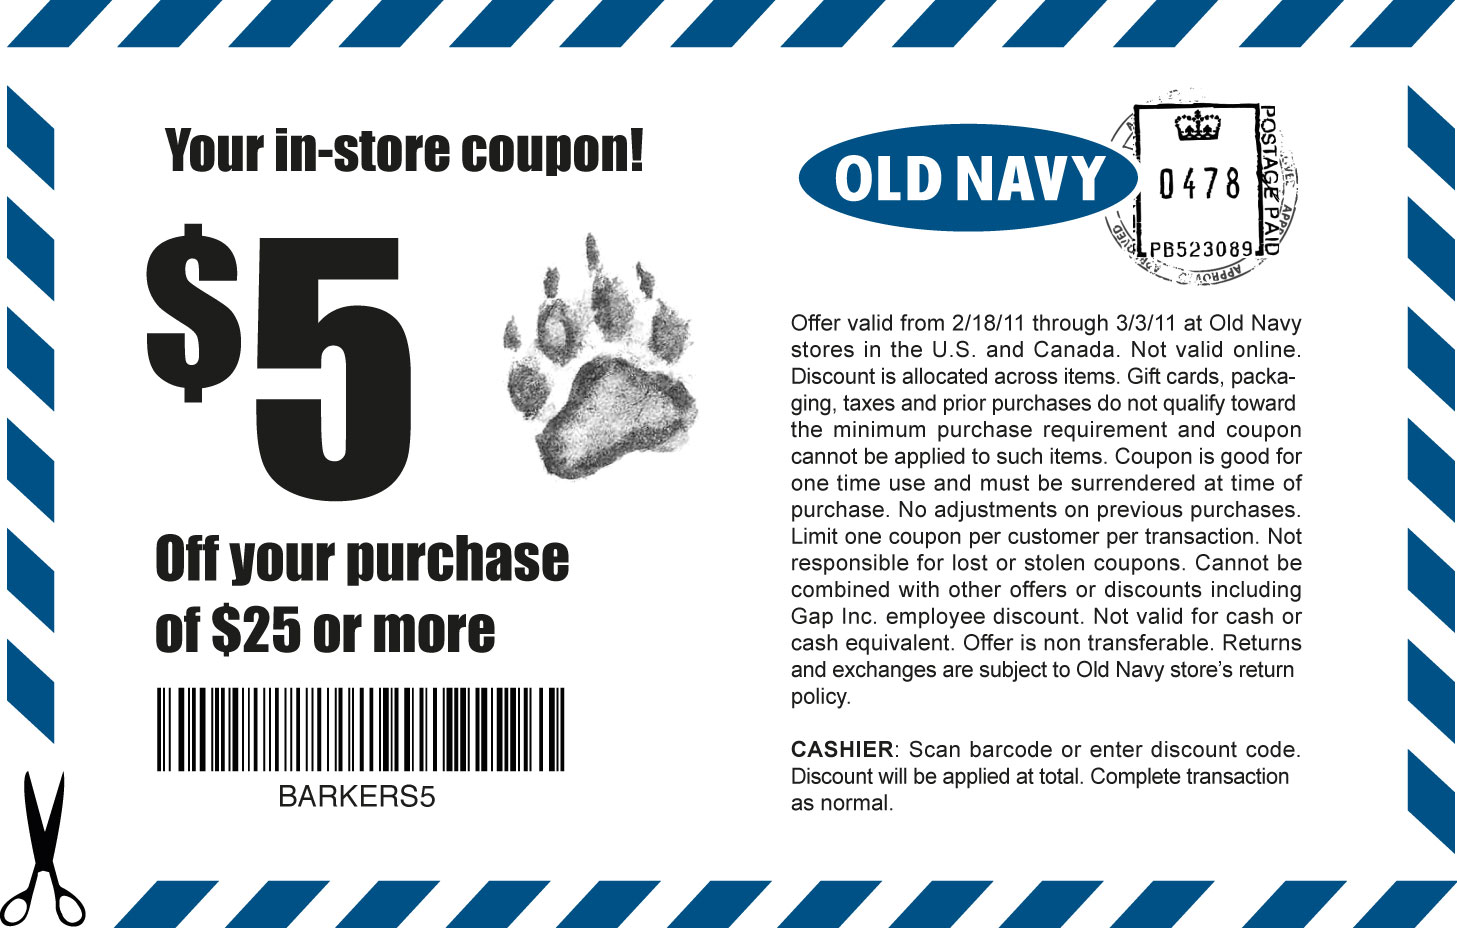 Old Navy Coupons & Promo Codes. 43 verified offers for October, purchase before any discounts or coupons are applied, allowing you to stack your savings! Often, you can often get 40% off your Old Navy purchase using discount codes. This does not work with all Old Navy coupons. Some Gap stores will accept Old Navy coupons but this 80%().